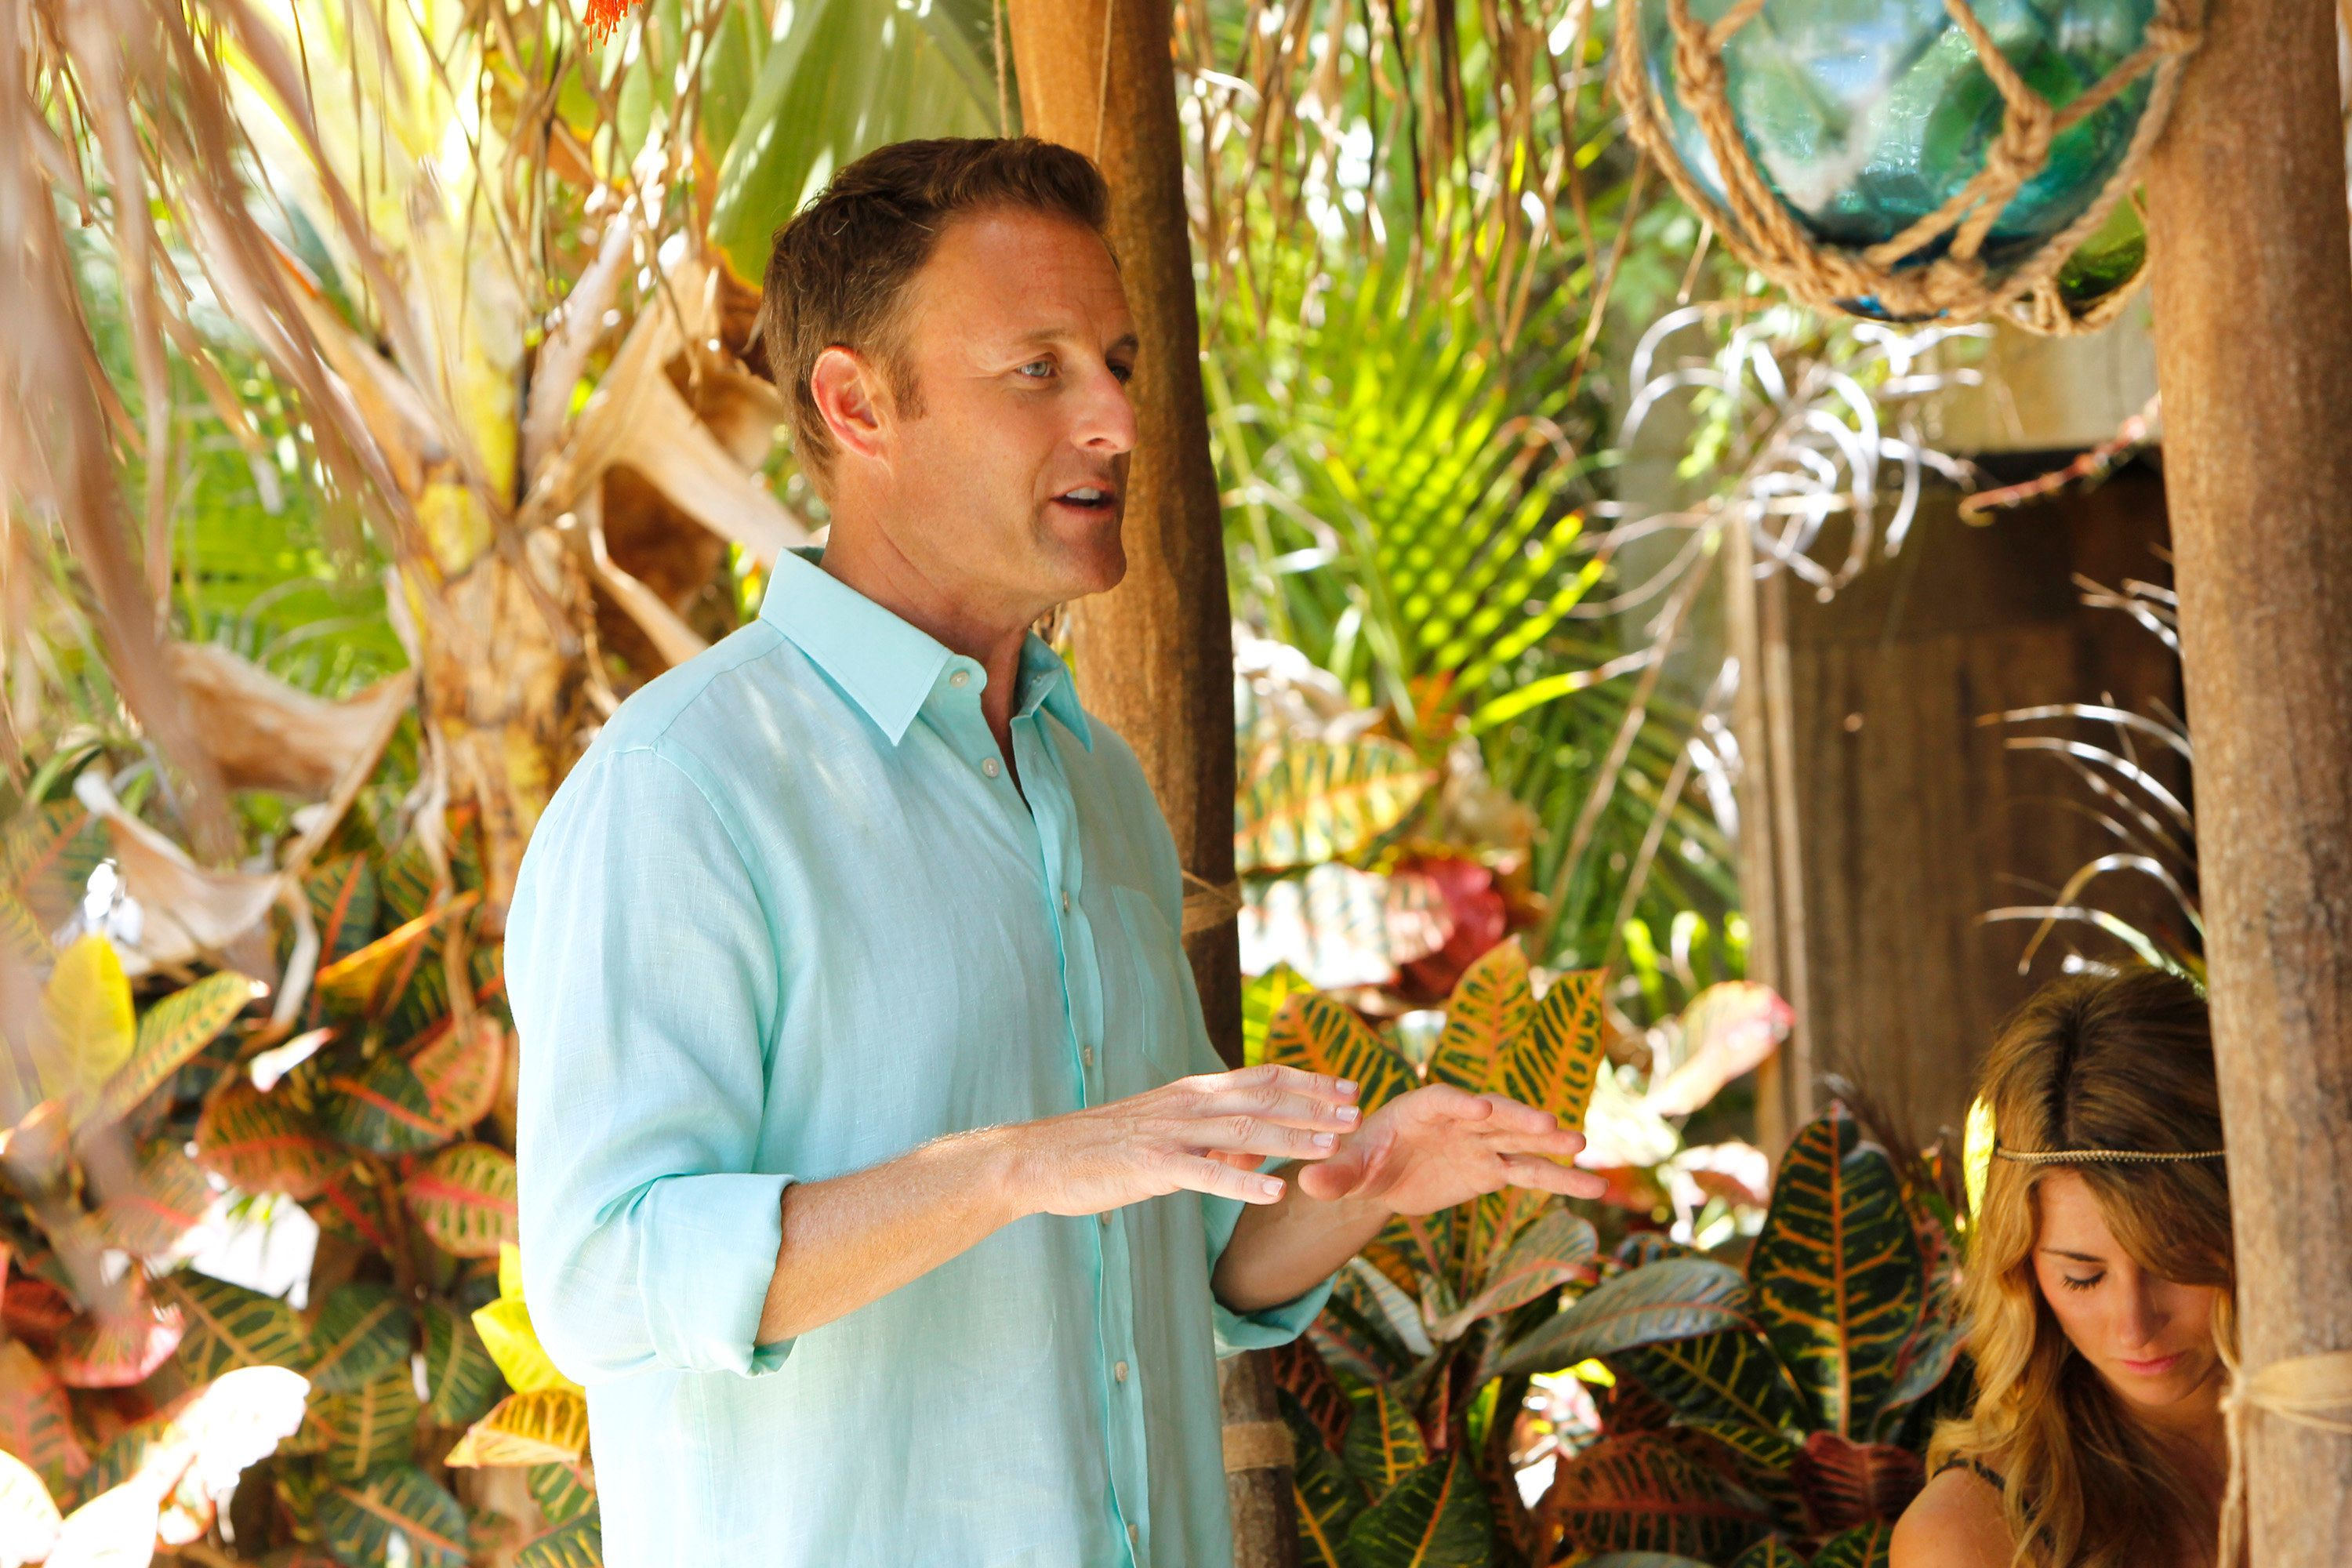 'Bachelor In Paradise' Cast Upset That Crew Members Let Sexual Incident Go Too